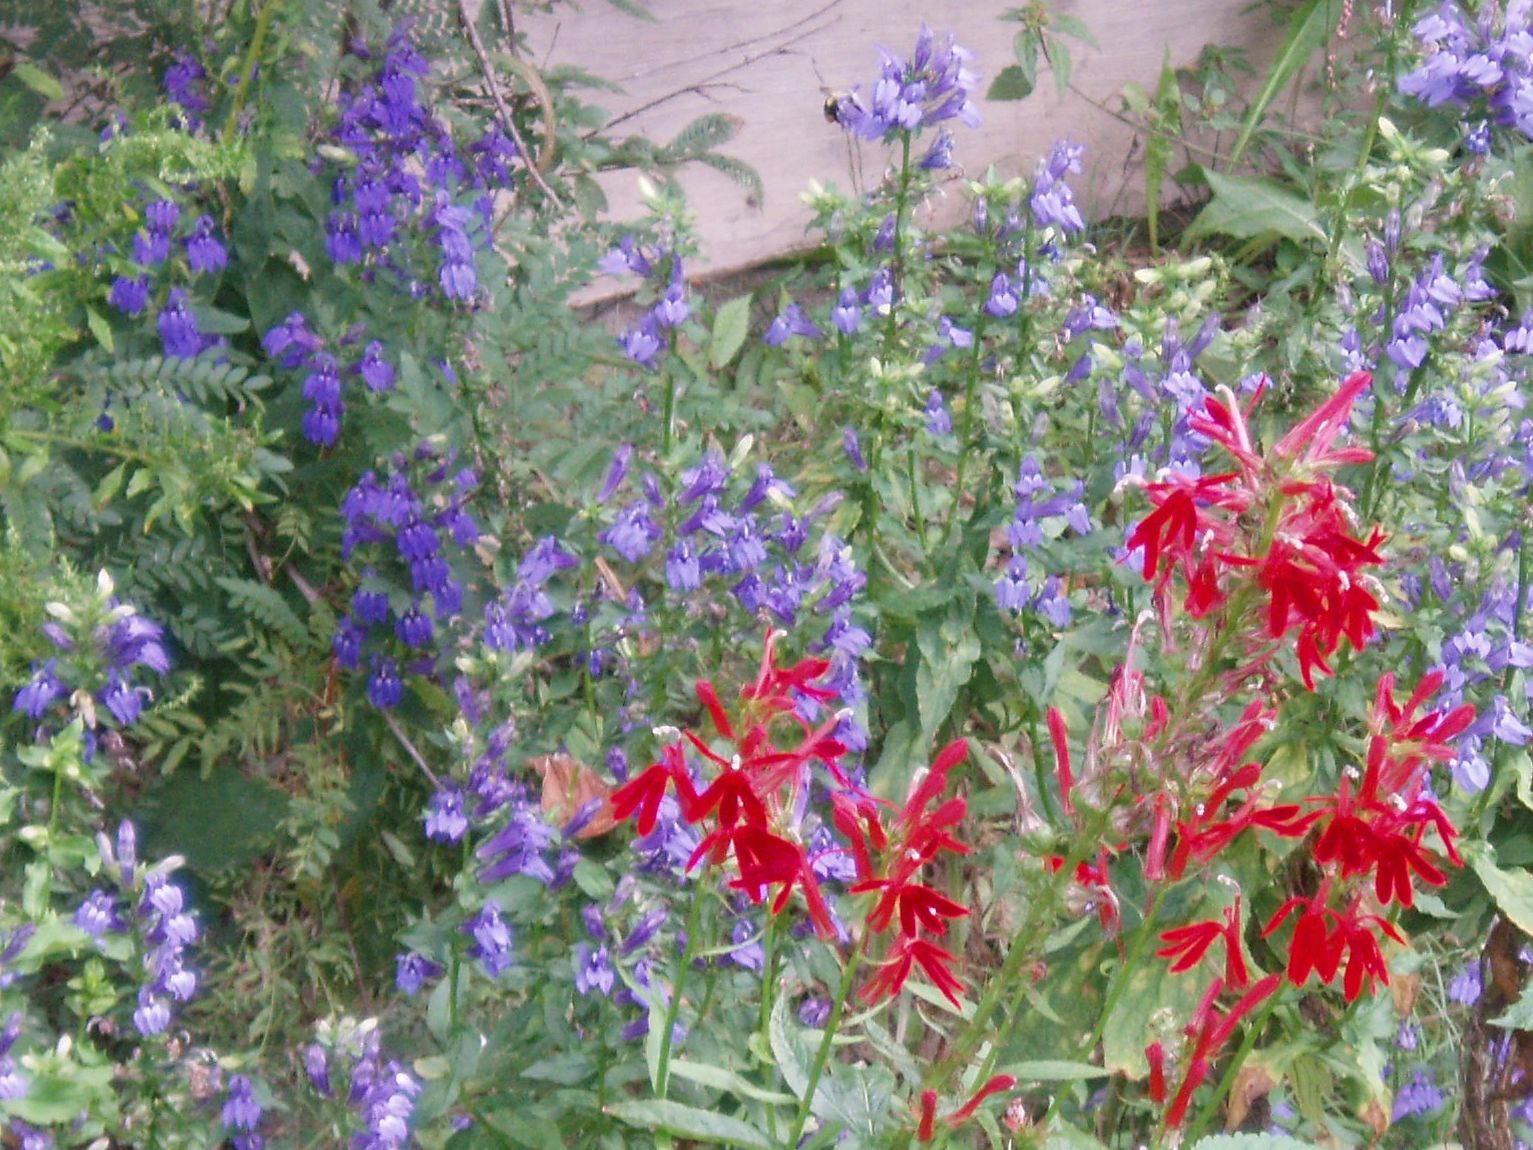 "{""blocks"":[{""key"":""66m7p"",""text"":"" Lobelia cardinalis Red Cardinal Flower with Blue Lobelia - potted plants email john@easywildflowers.com  "",""type"":""unstyled"",""depth"":0,""inlineStyleRanges"":[],""entityRanges"":[],""data"":{}}],""entityMap"":{}}"